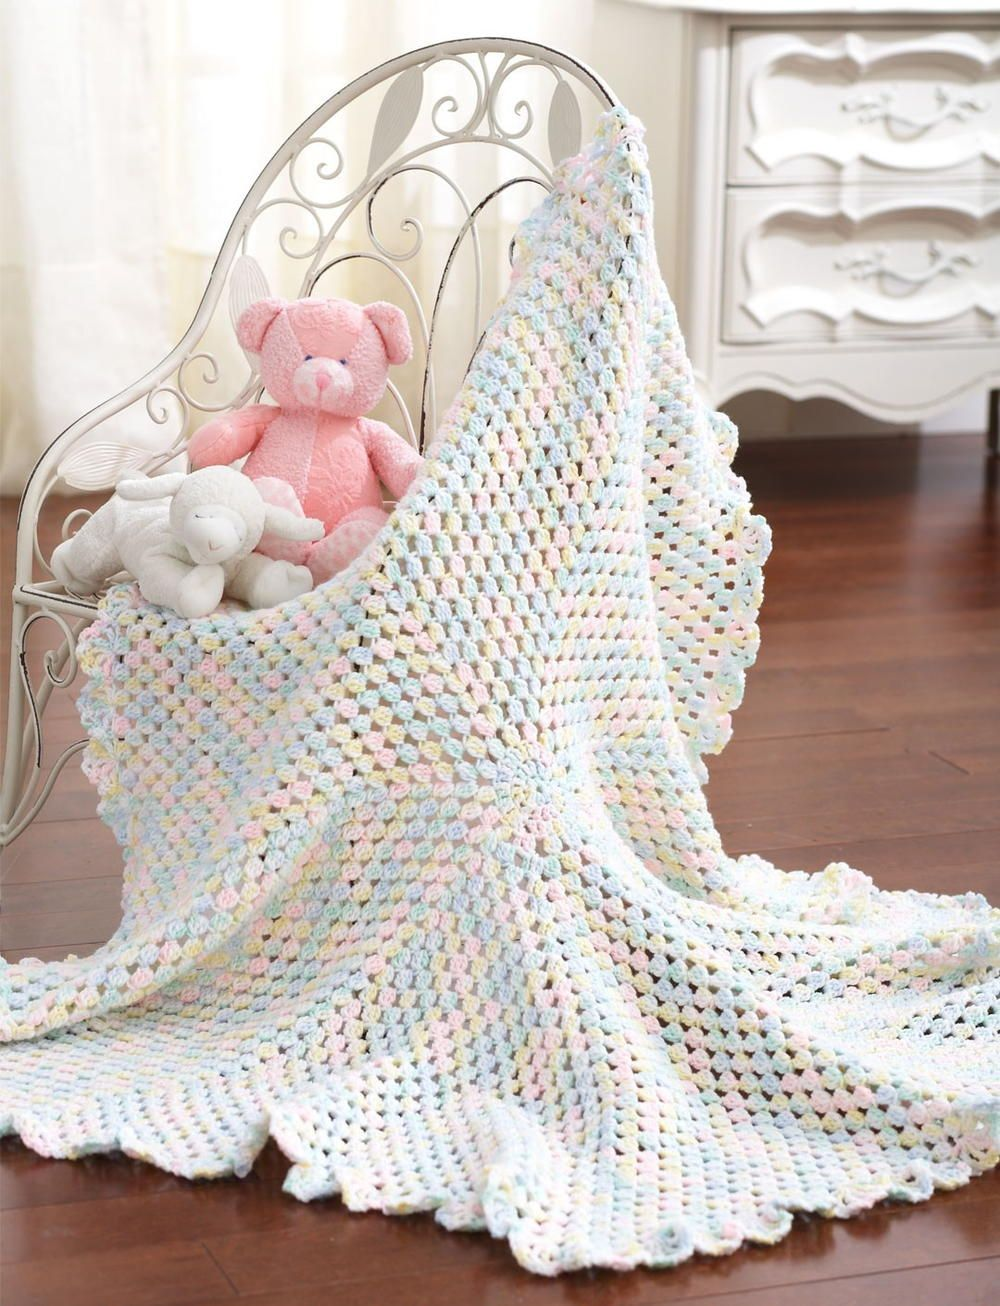 Marshmallow Baby Blanket | Crochet | Pinterest | Hilo y Tablero